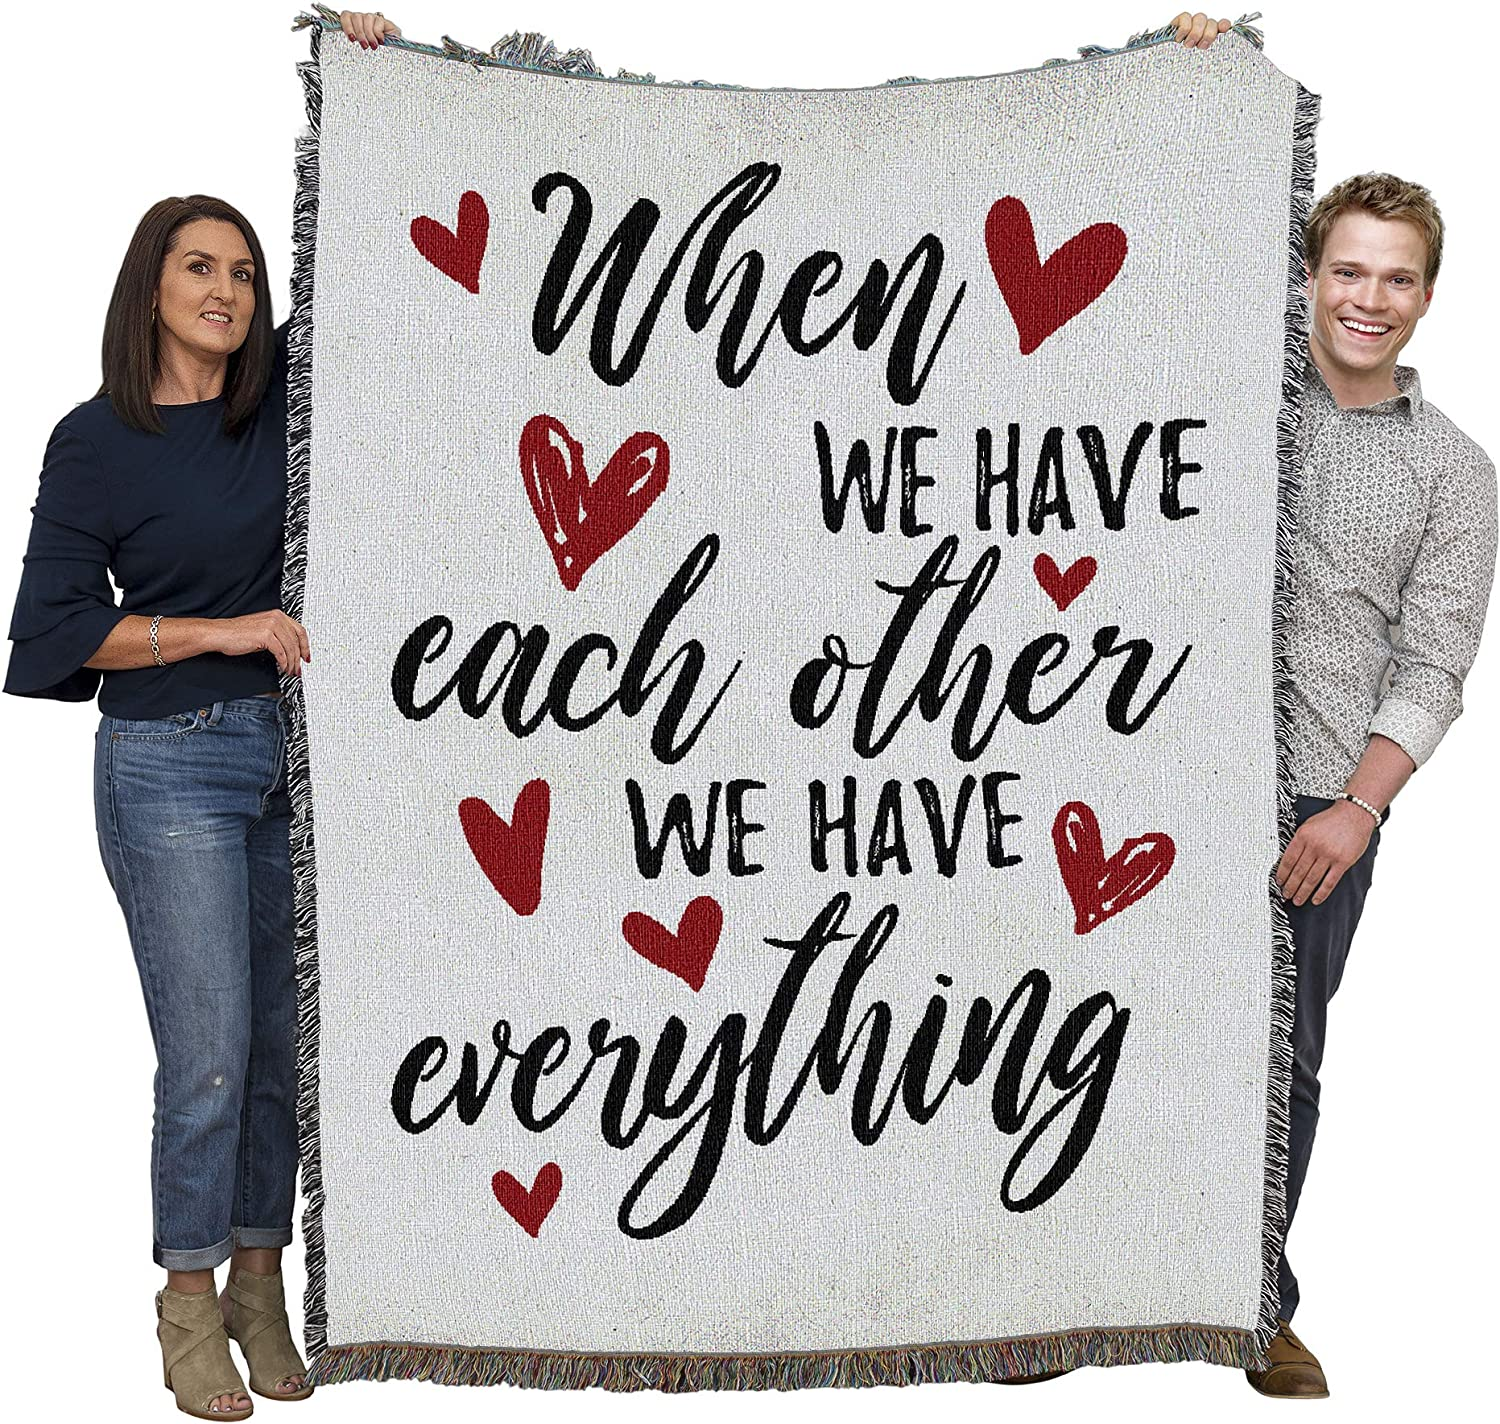 Pure Country Weavers Together we Have Everything Blanket Throw Woven from Cotton - Made in The USA (72x54)